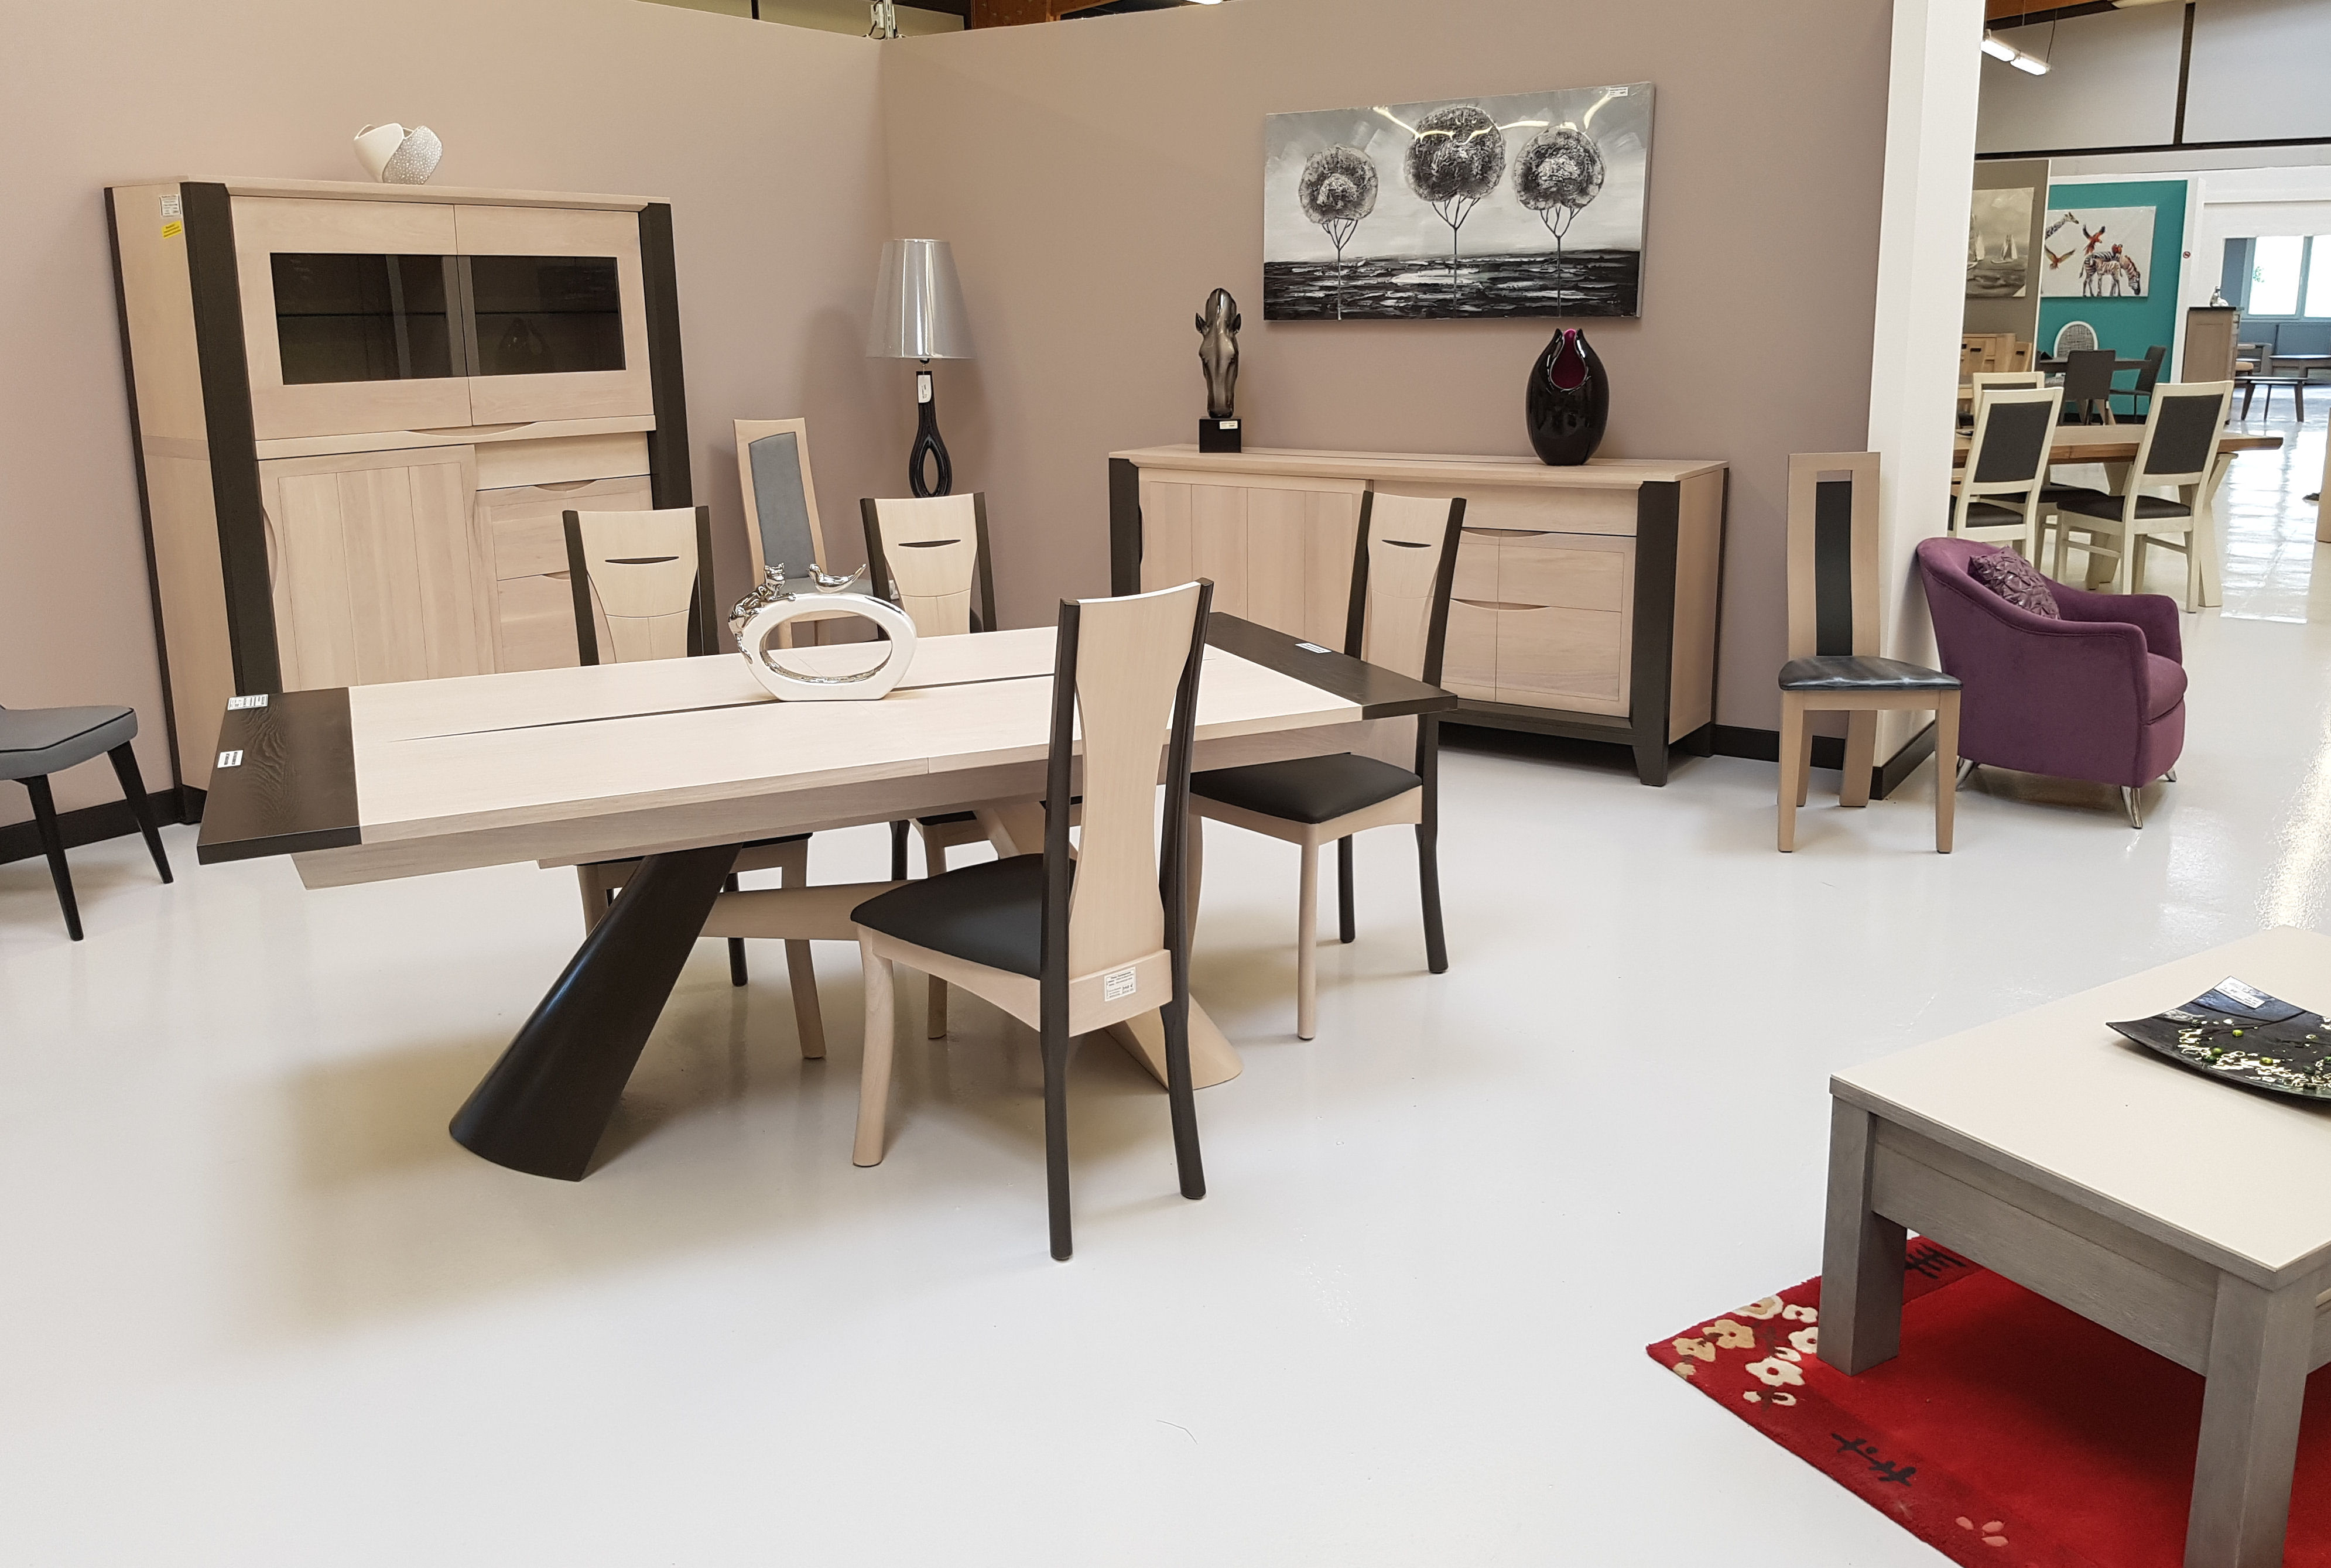 meubles de salle manger cevenne exposition ville en vermois. Black Bedroom Furniture Sets. Home Design Ideas